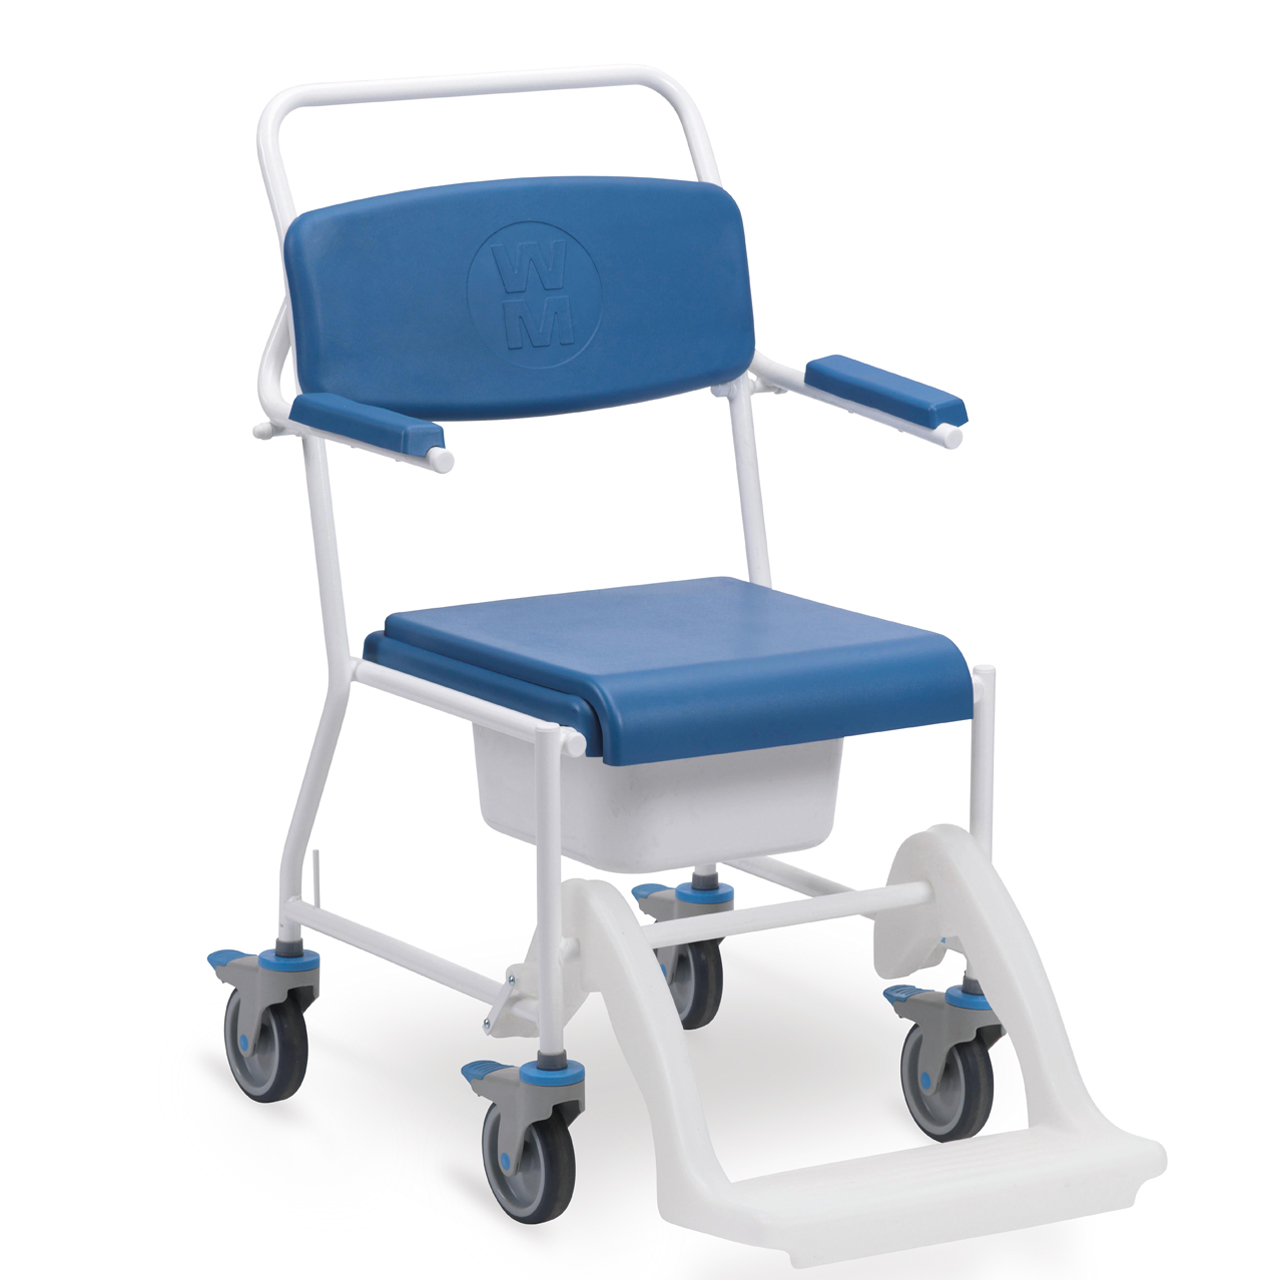 Shower Chairs | Bath Safety | Products | Drive Devilbiss International